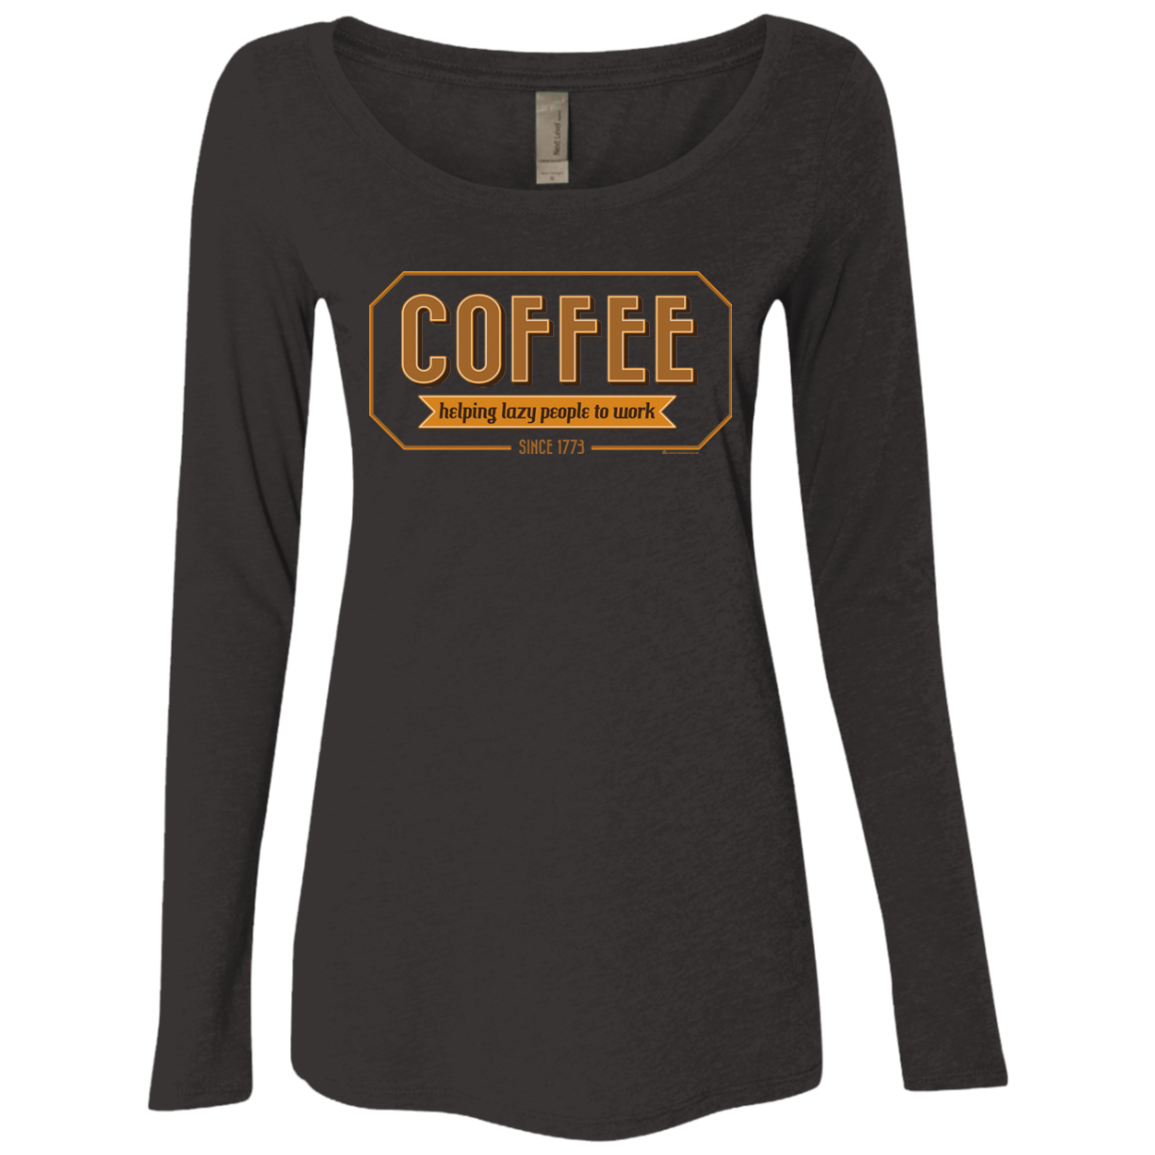 Coffee For Lazy People Women s Triblend Long Sleeve Shirt